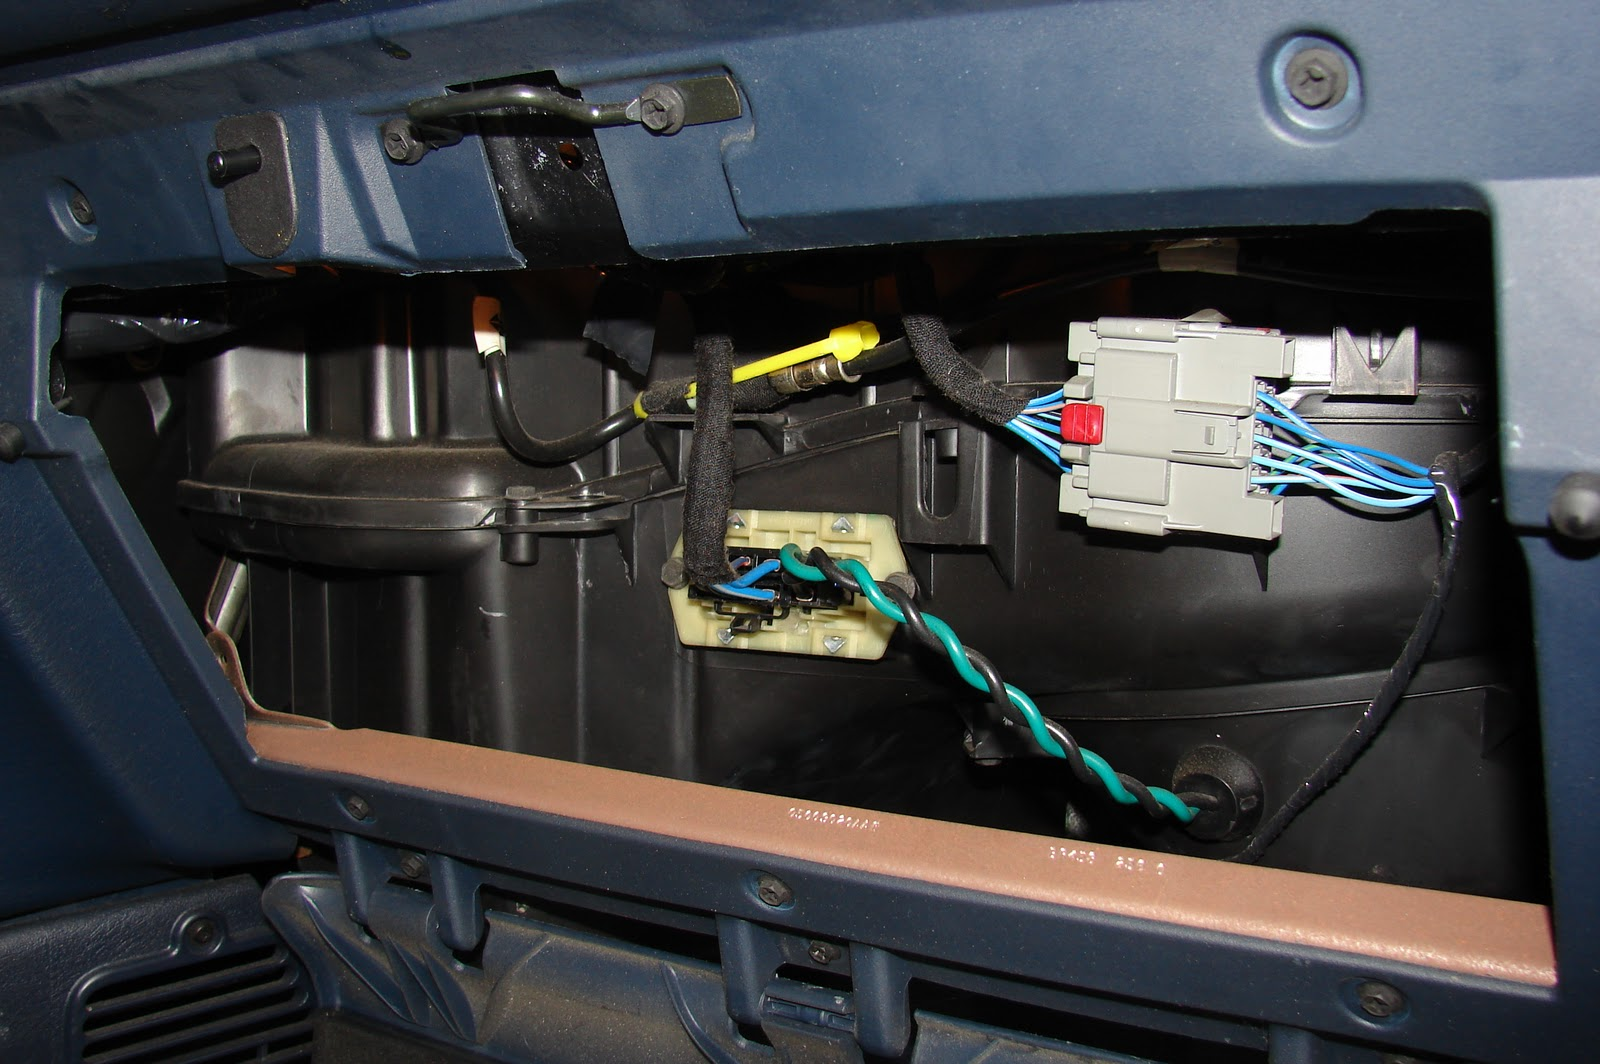 2007 Dodge Caravan Fuse Box Location 36 Wiring Diagram Images 2010 2500 Of Fuses Dsc08751 My Commentary And Technical Help Fan Only Works On